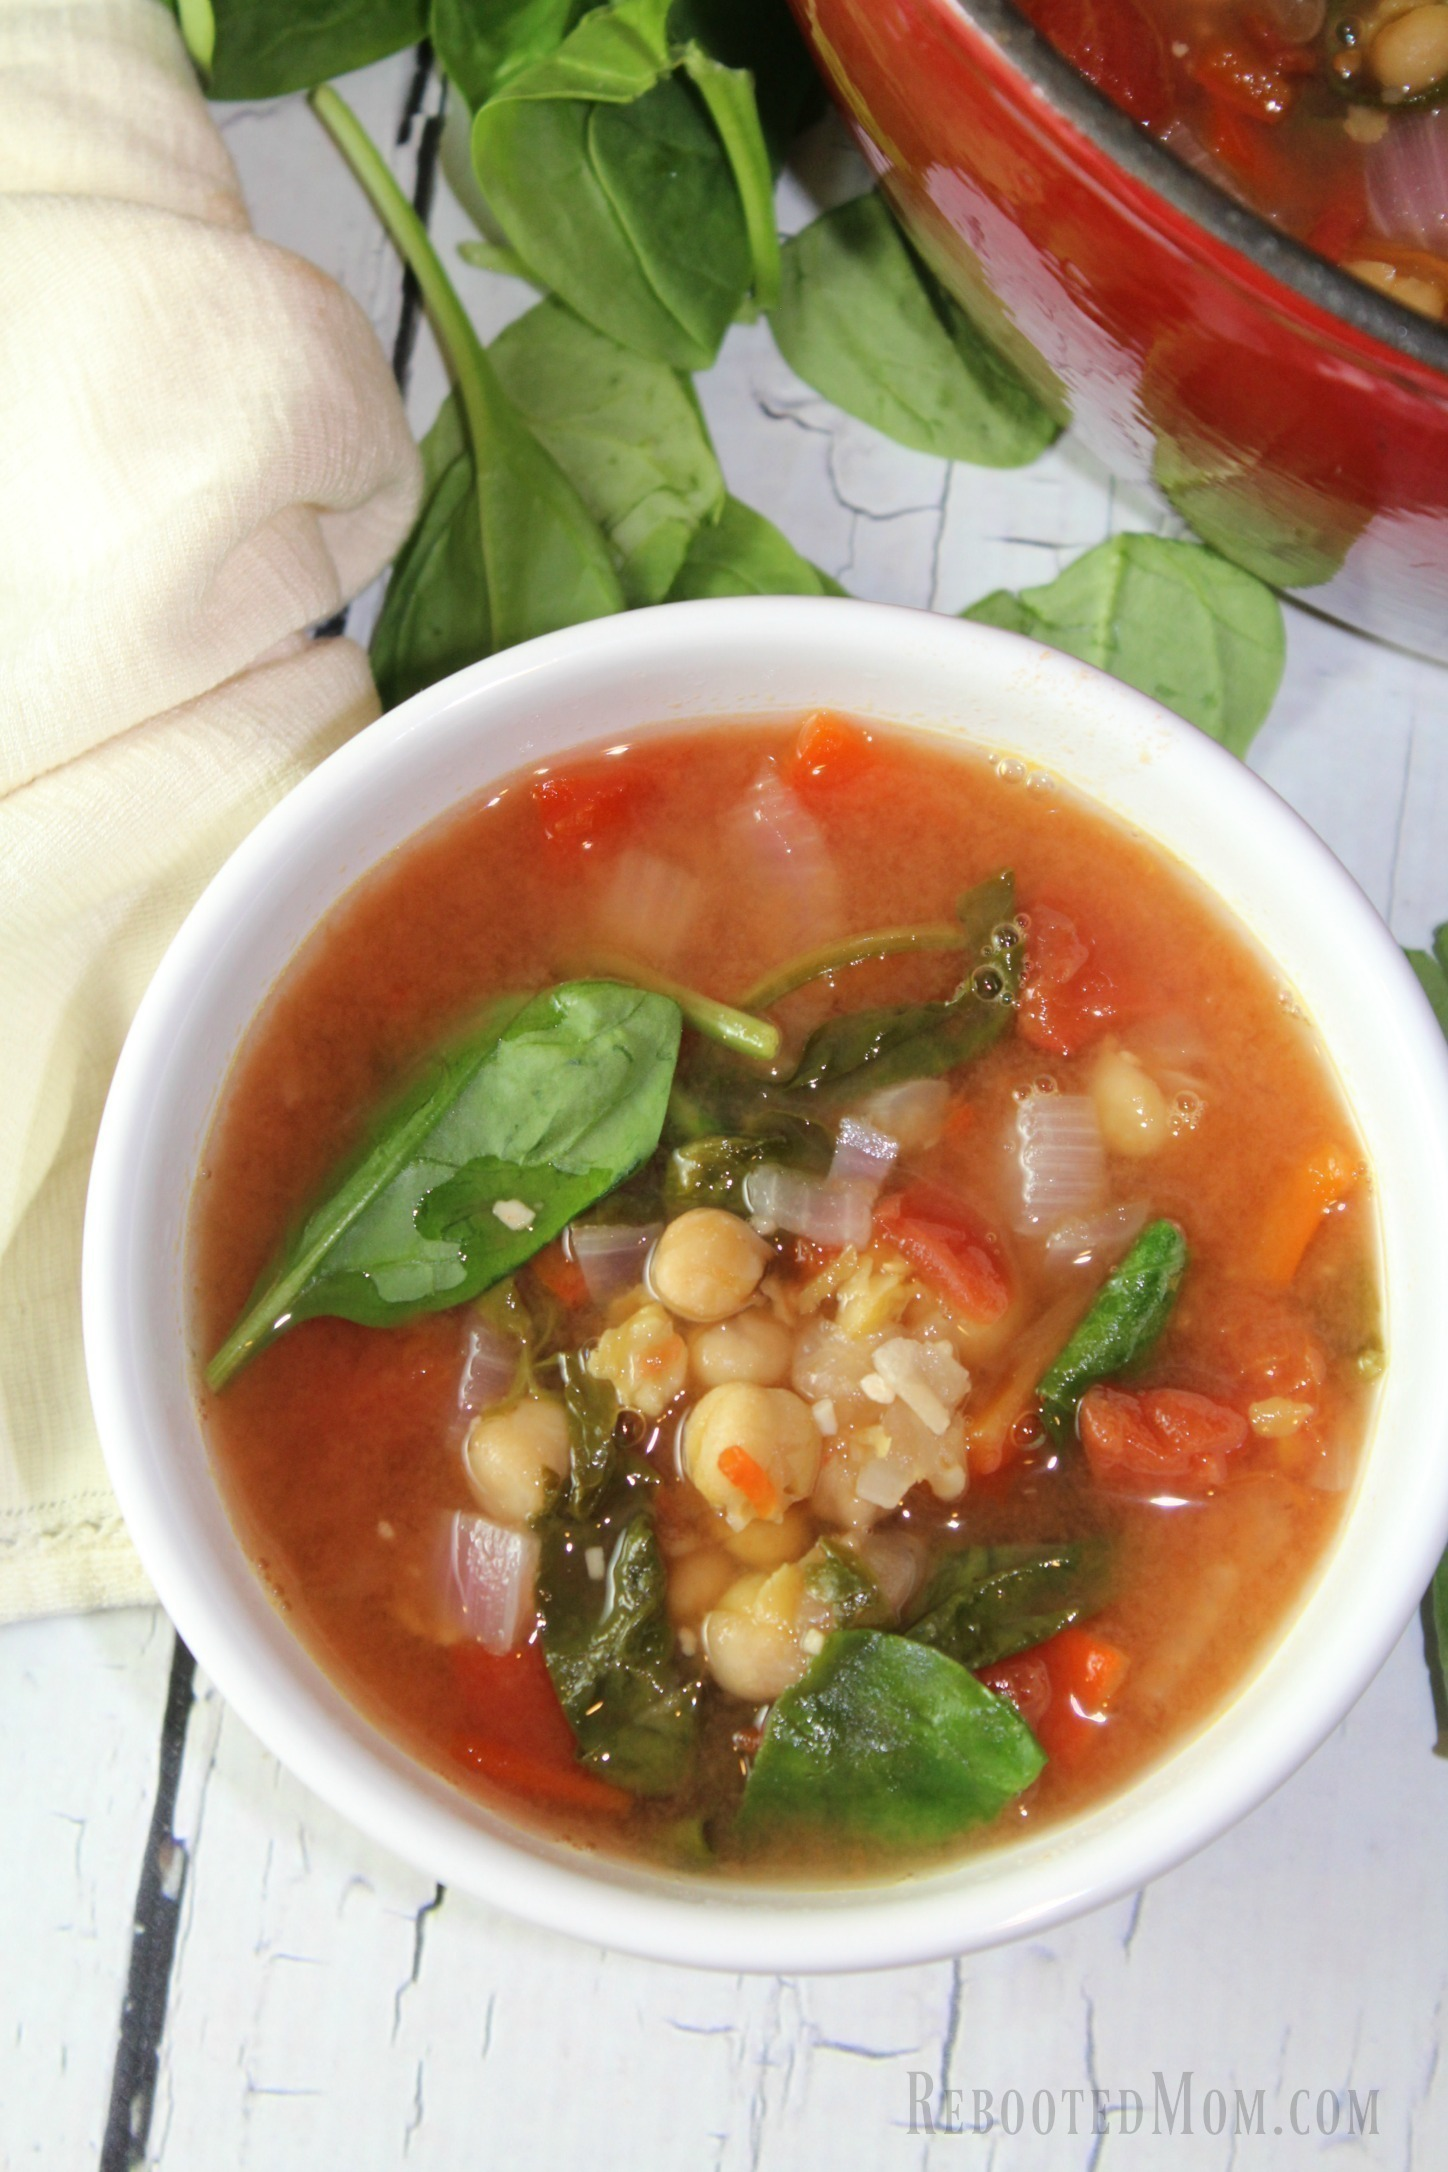 A hearty italian chickpea soup that absorbs the flavors of onion, garlic, roasted red peppers in a flavorful vegetable broth.